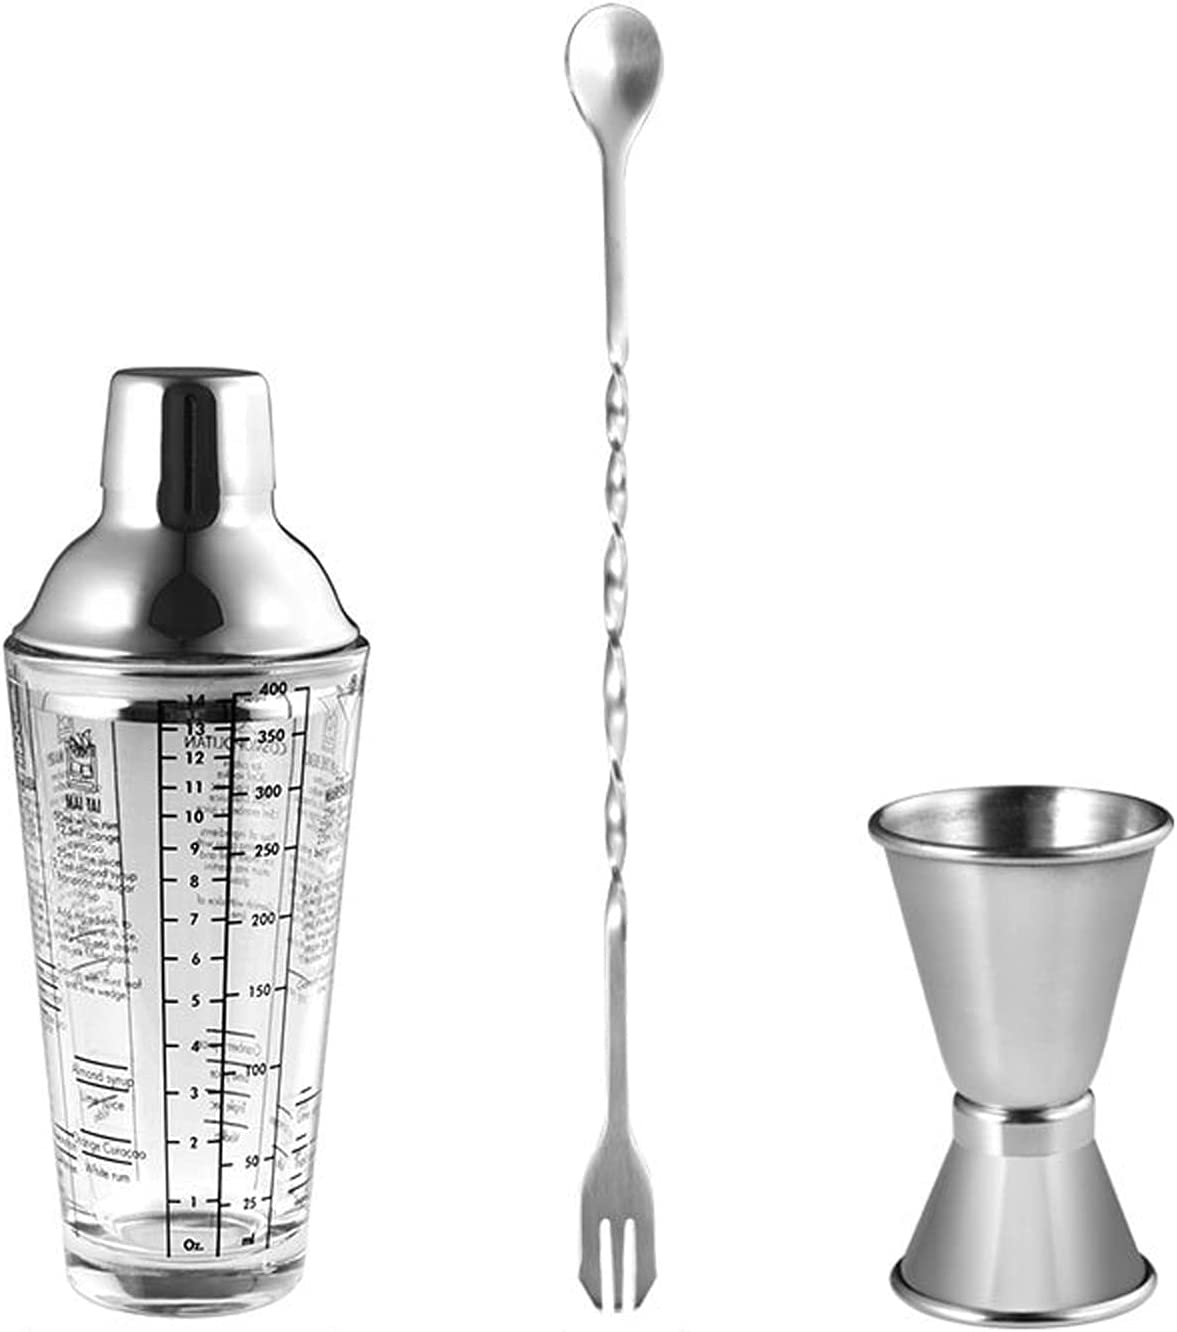 Cocktail Shakers Glass Max 53% Sales results No. 1 OFF drink set shaker hand cra